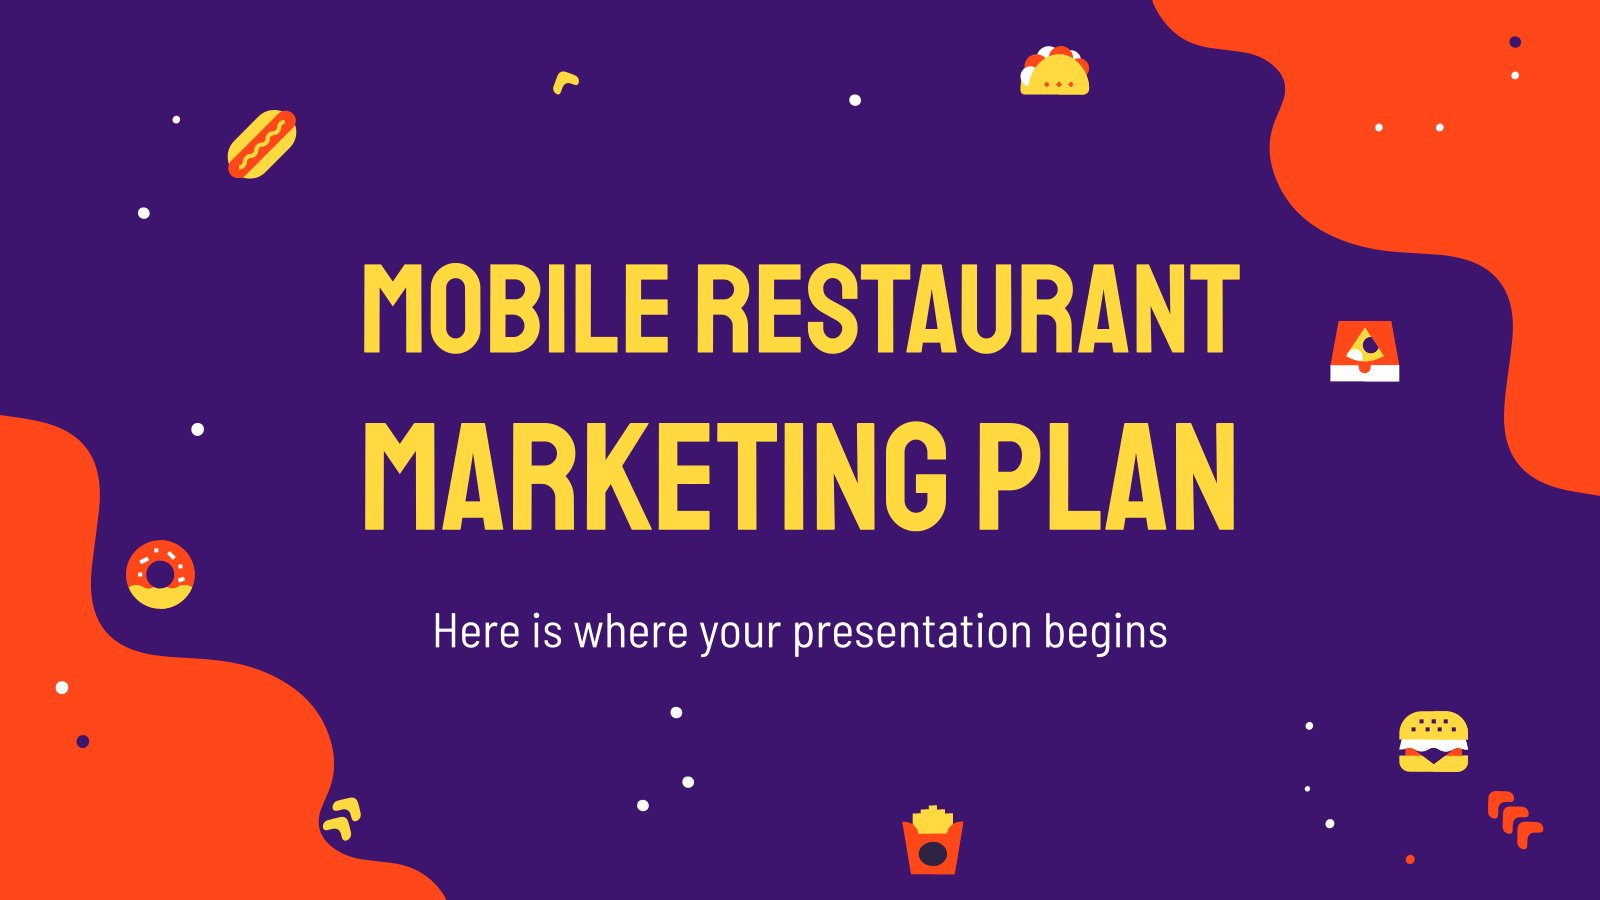 Mobile Restaurant Marketing Plan presentation template